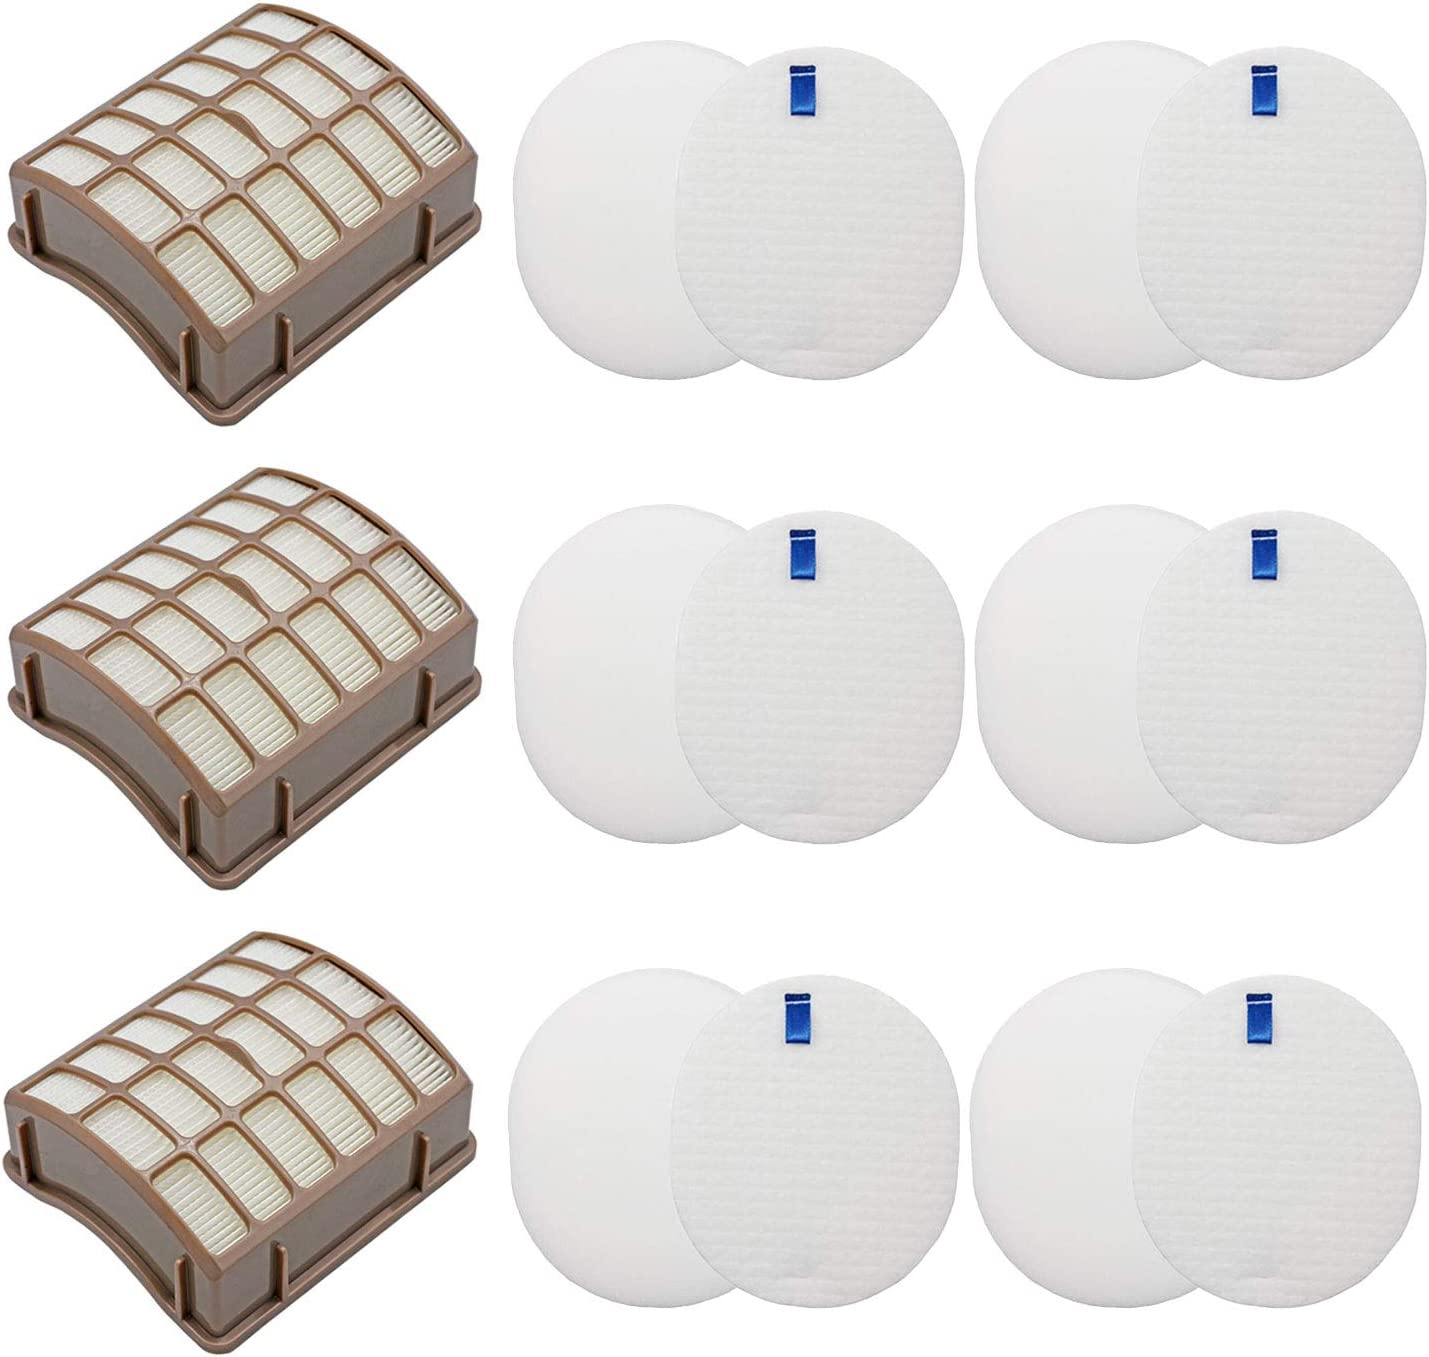 Lemige Vacuum Filter Replacement for Shark Navigator Rotator Professional NV70 NV71 NV80 NV90 NV95 UV420, Compare to Part XHF80&XFF80, 3 HEPA Filters +6 Foam Filters + 6 Felt Filters